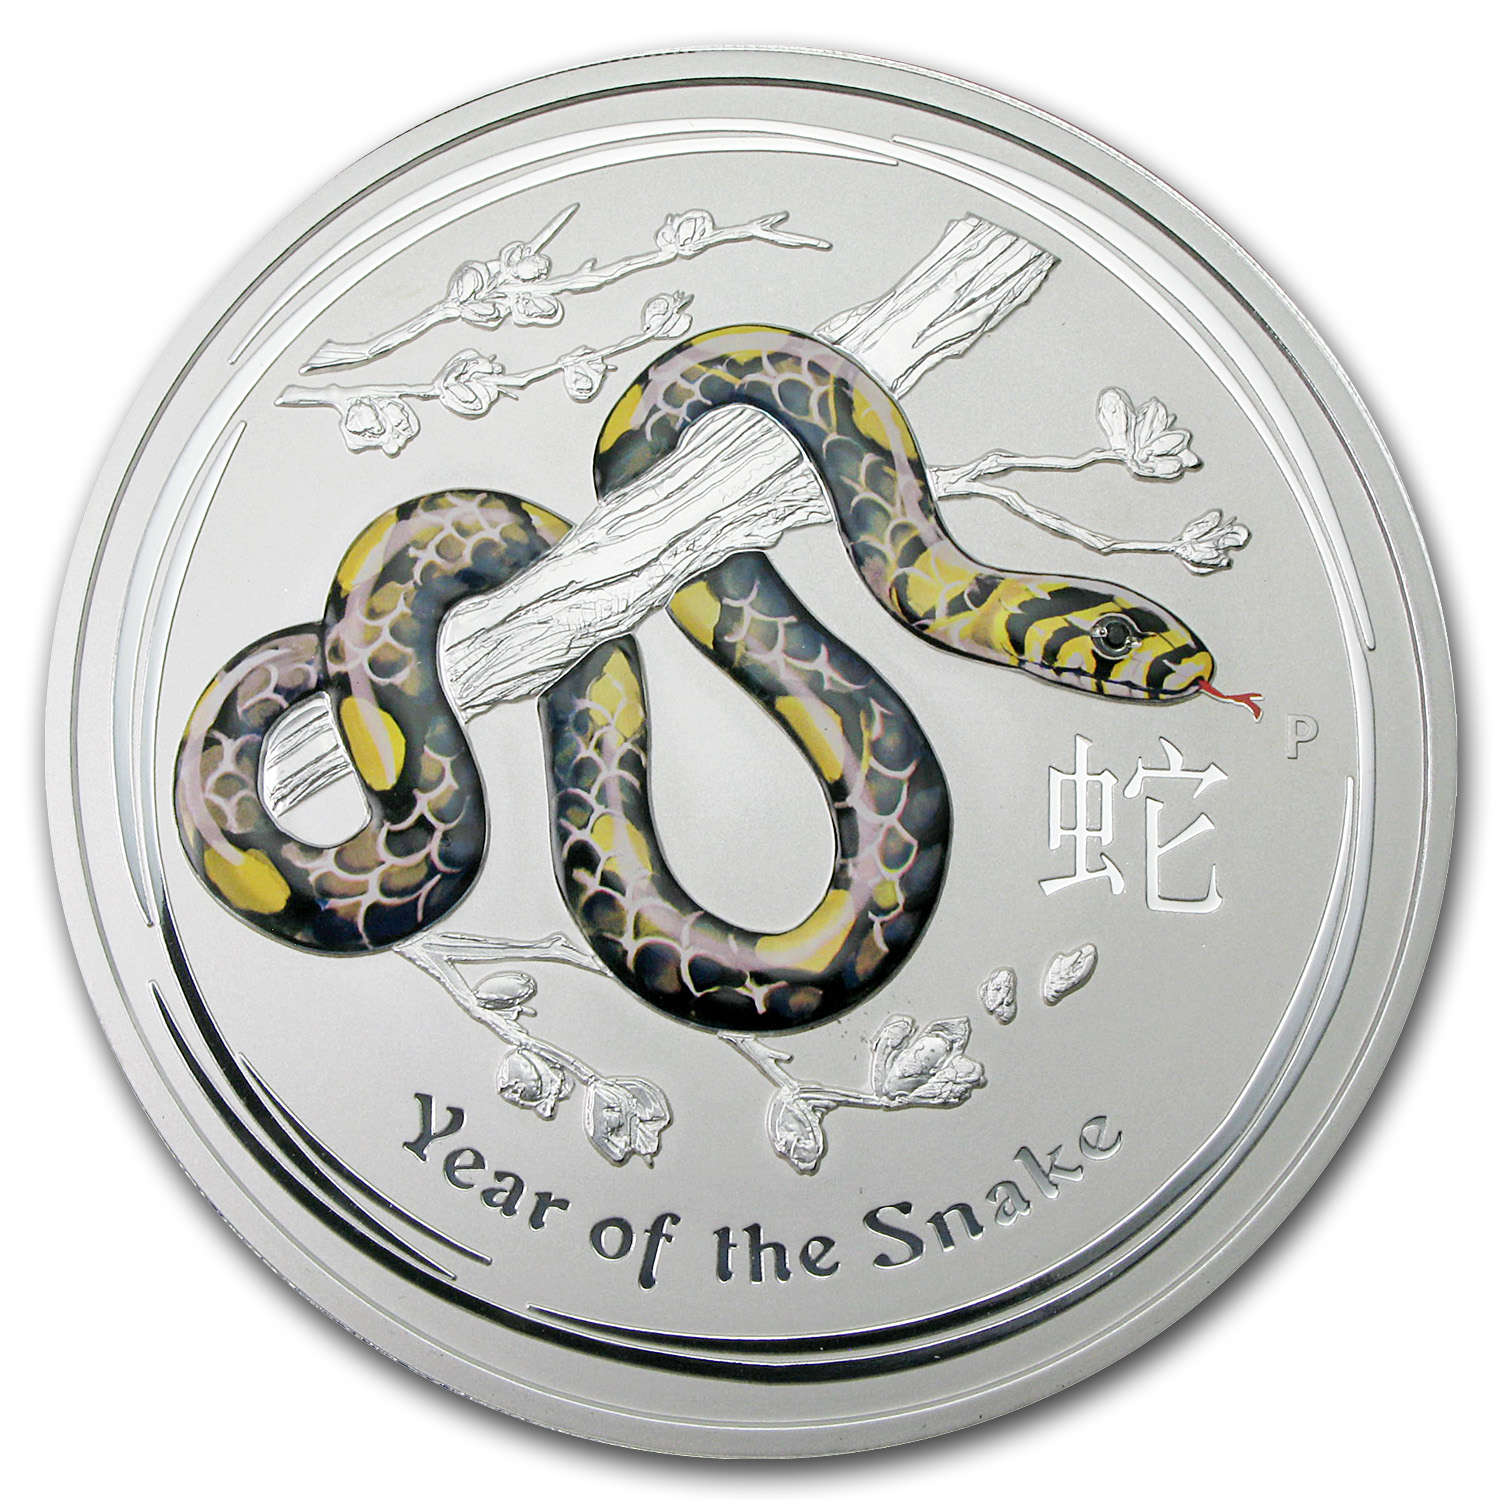 2013 Australia 1 kilo Silver Year of the Snake BU (Gemstone Eye)